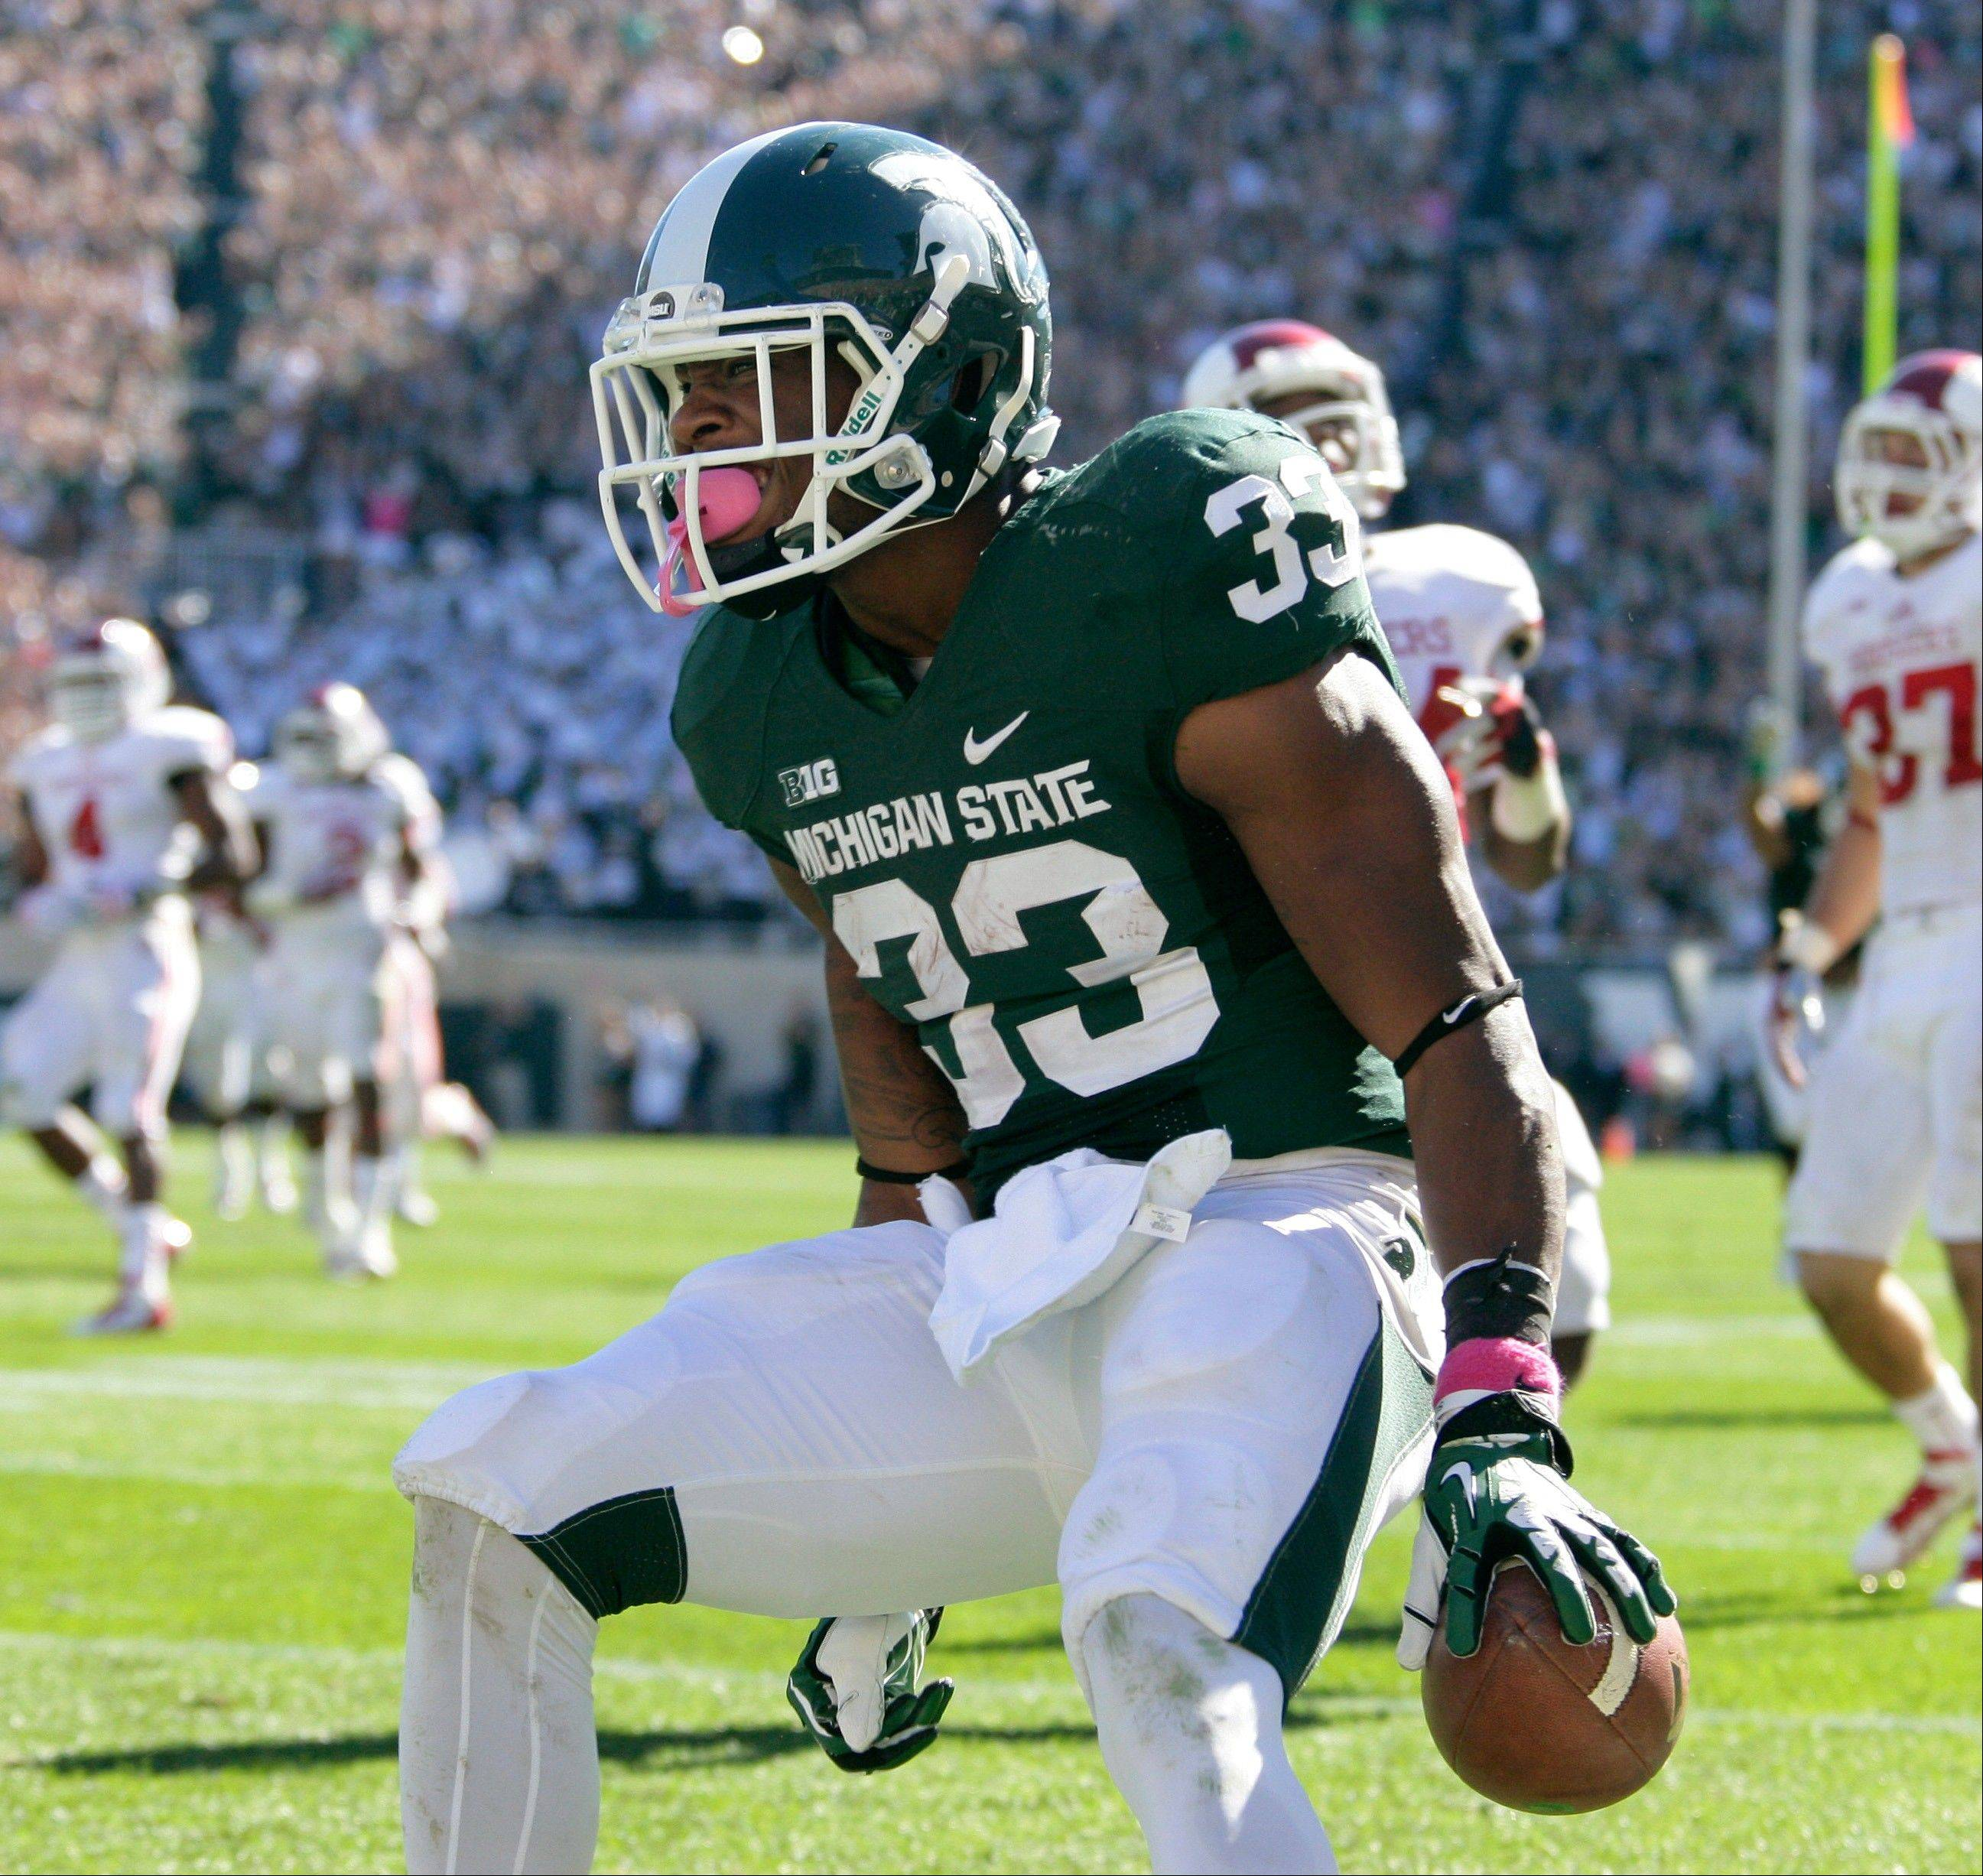 Michigan St. finds reliable RB in Langford